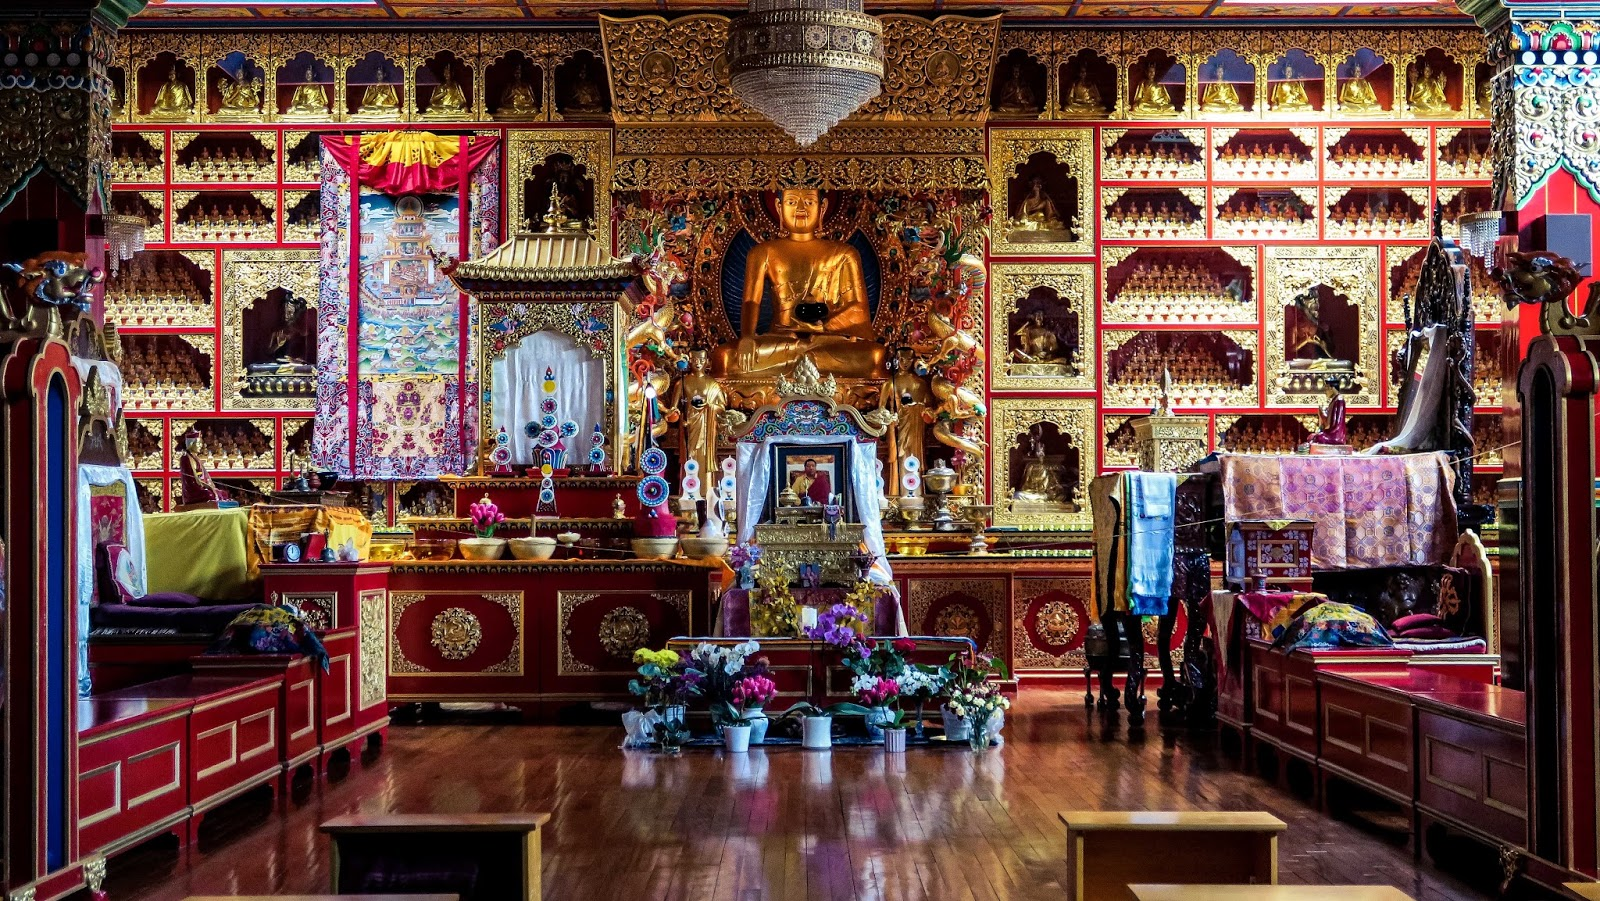 samye ling liquidgrain liquid grain buddhist temple scotland